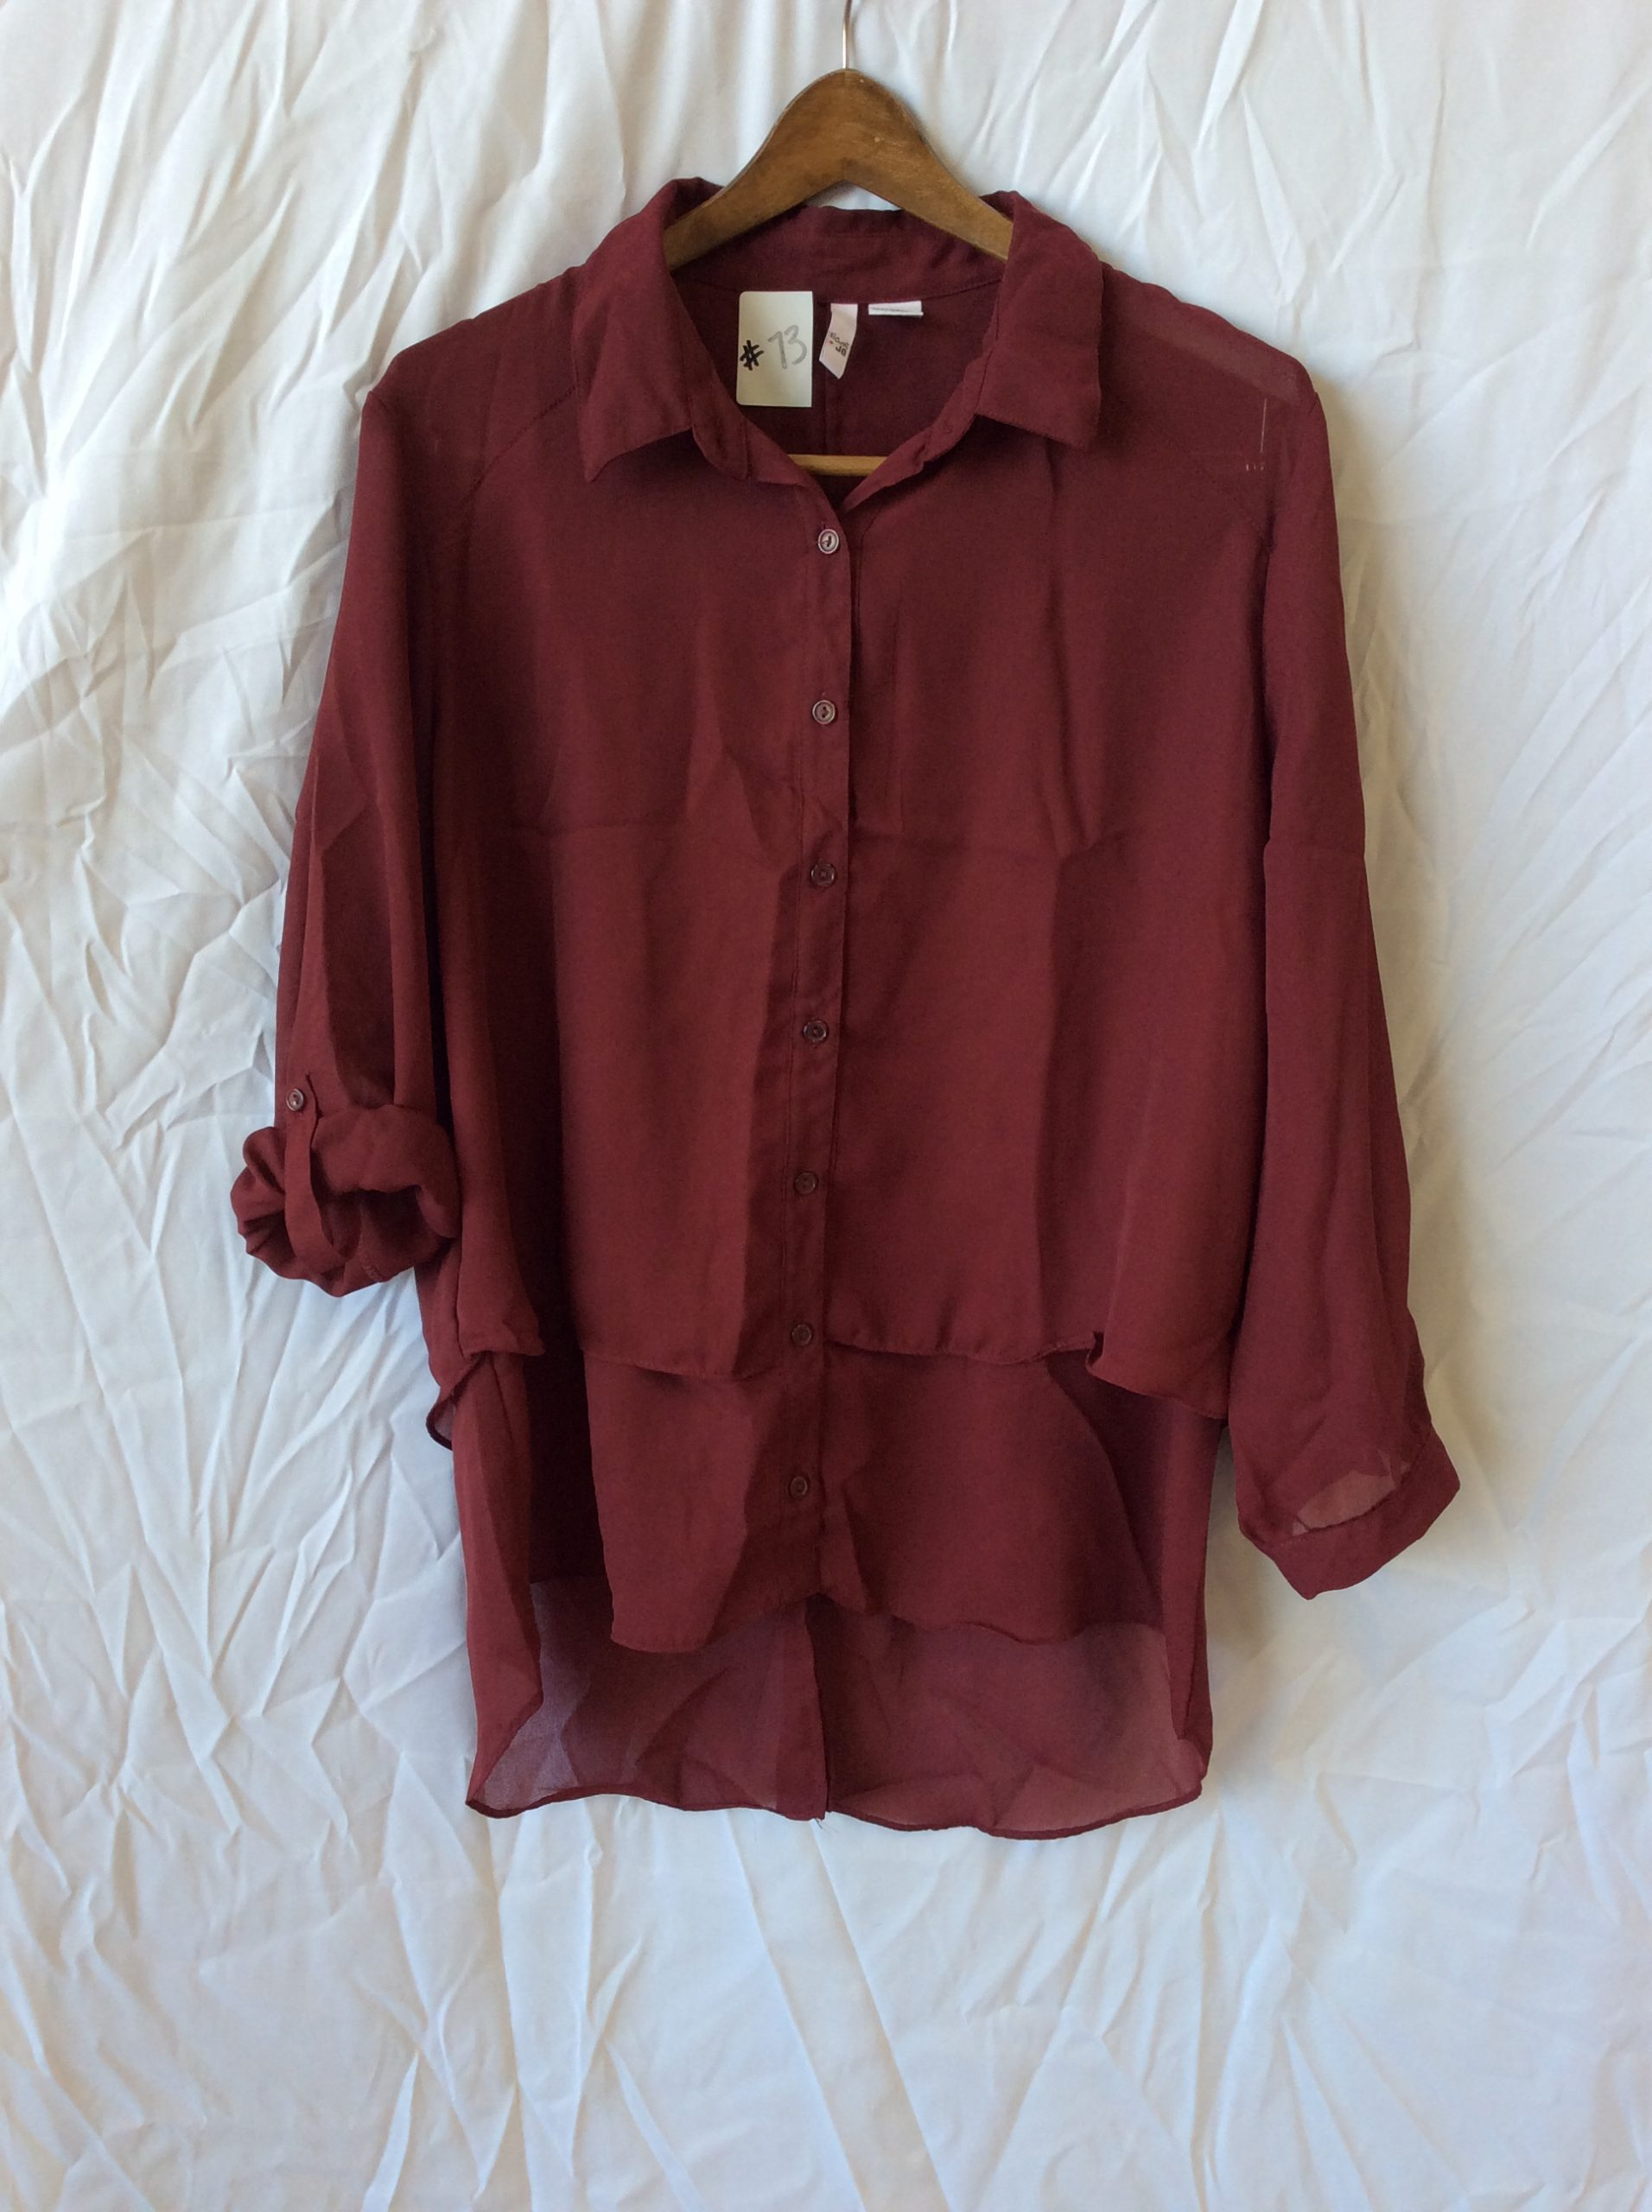 Women's button up maroon top, size xl